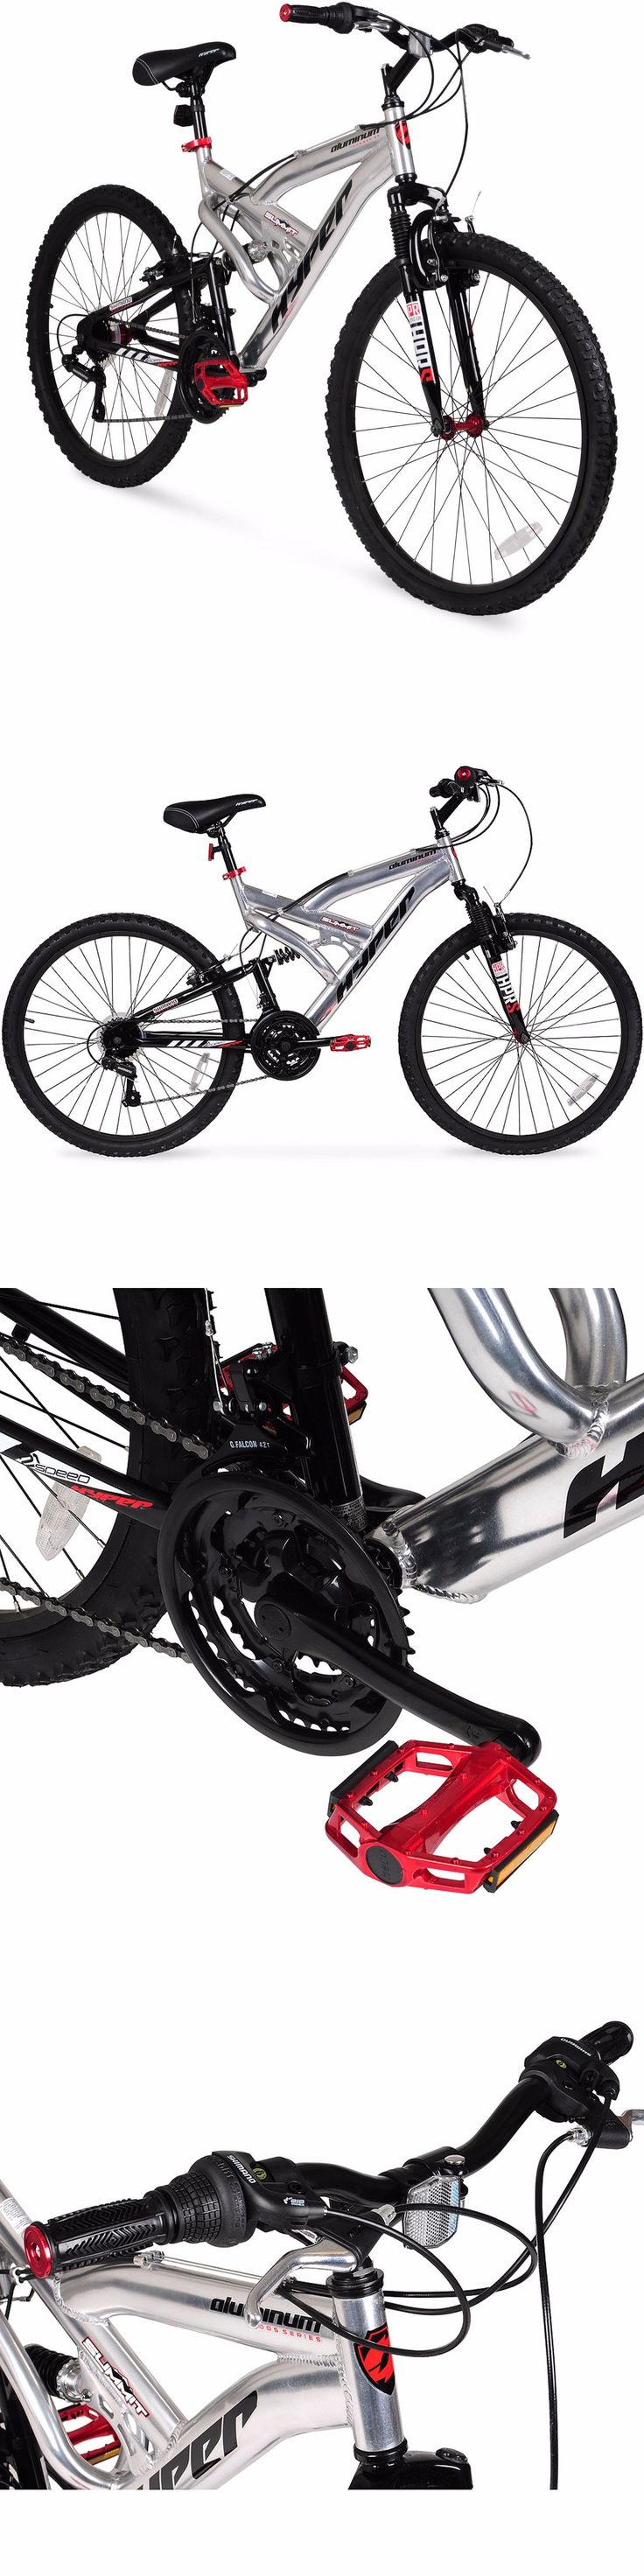 Bicycles 177831: Men S Mountain Bike 26 Aluminum Frame Bicycle Shimano Full Suspension Silver -> BUY IT NOW ONLY: $106.25 on eBay!